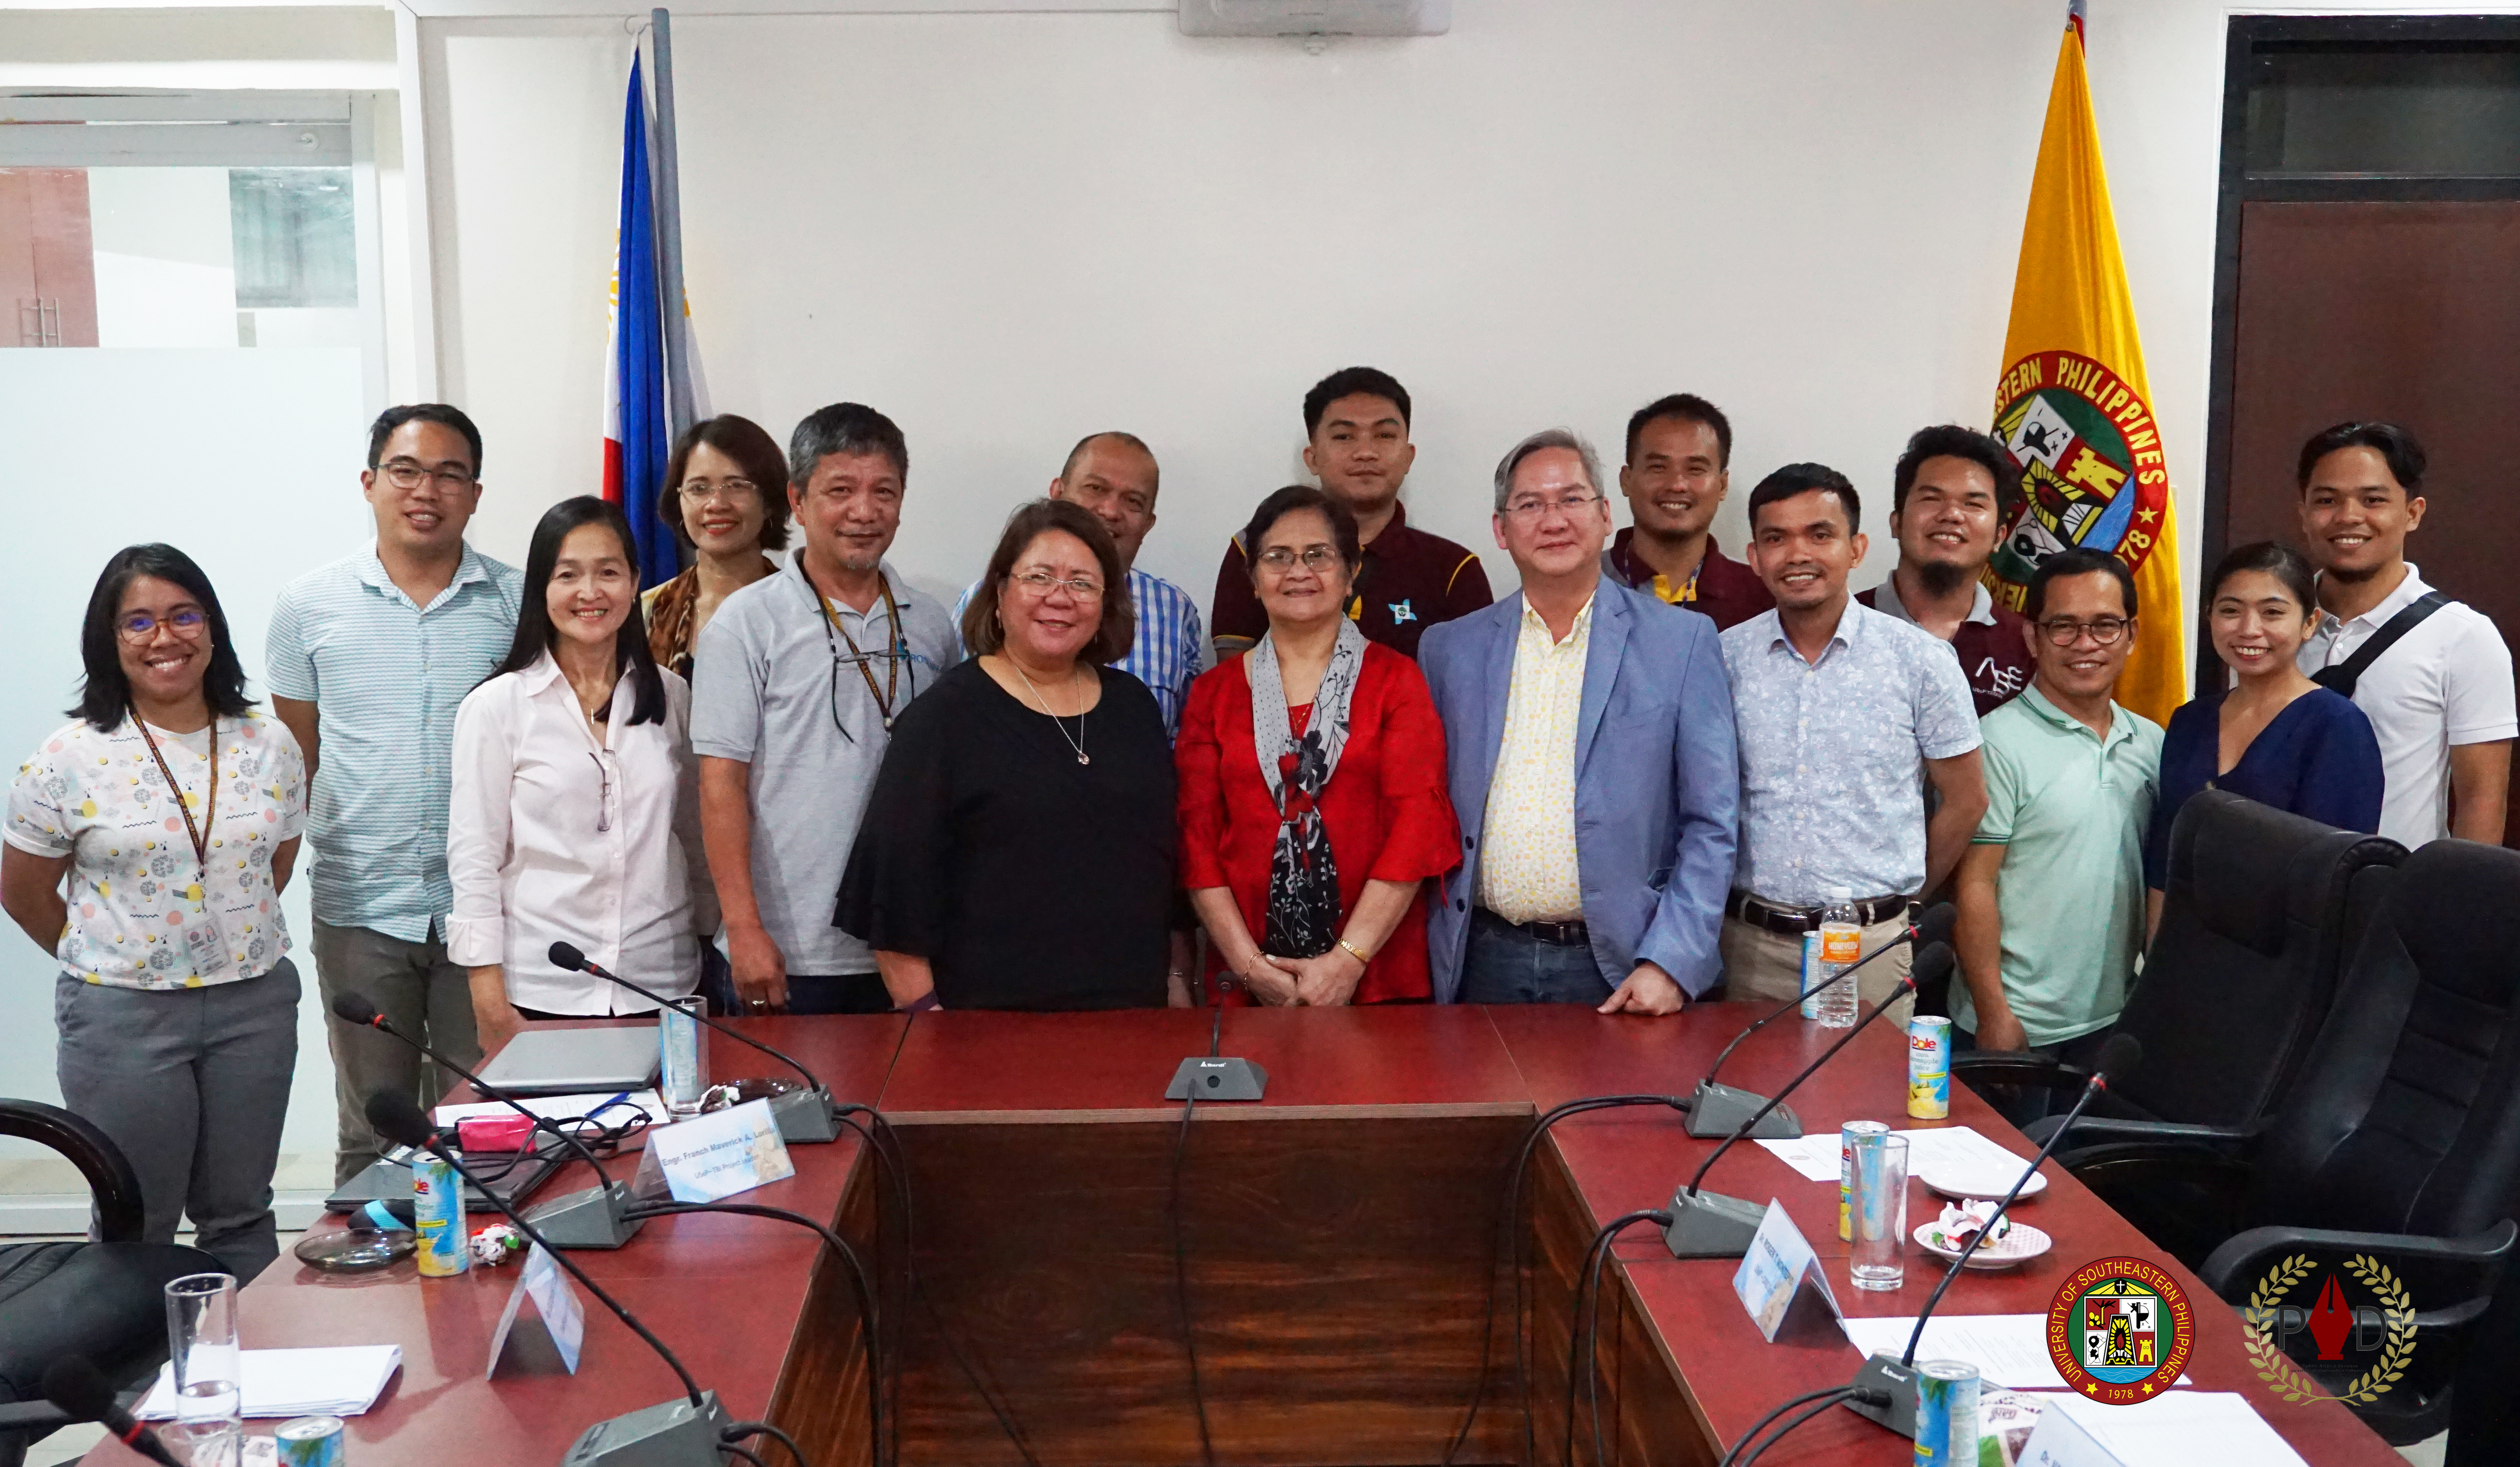 University President Lourdes Generalao, DOST Undersecretary for R&D Rowena Cristina L. Guevara, DOST XI Regional Director Anthony Sales, Assistant Regional Director for Development and Innovation Kenneth Barroga, university officials, and Lead researchers and staff of DOST-funded USeP programs and projects pose for a posterity shot after discussing updates and milestones